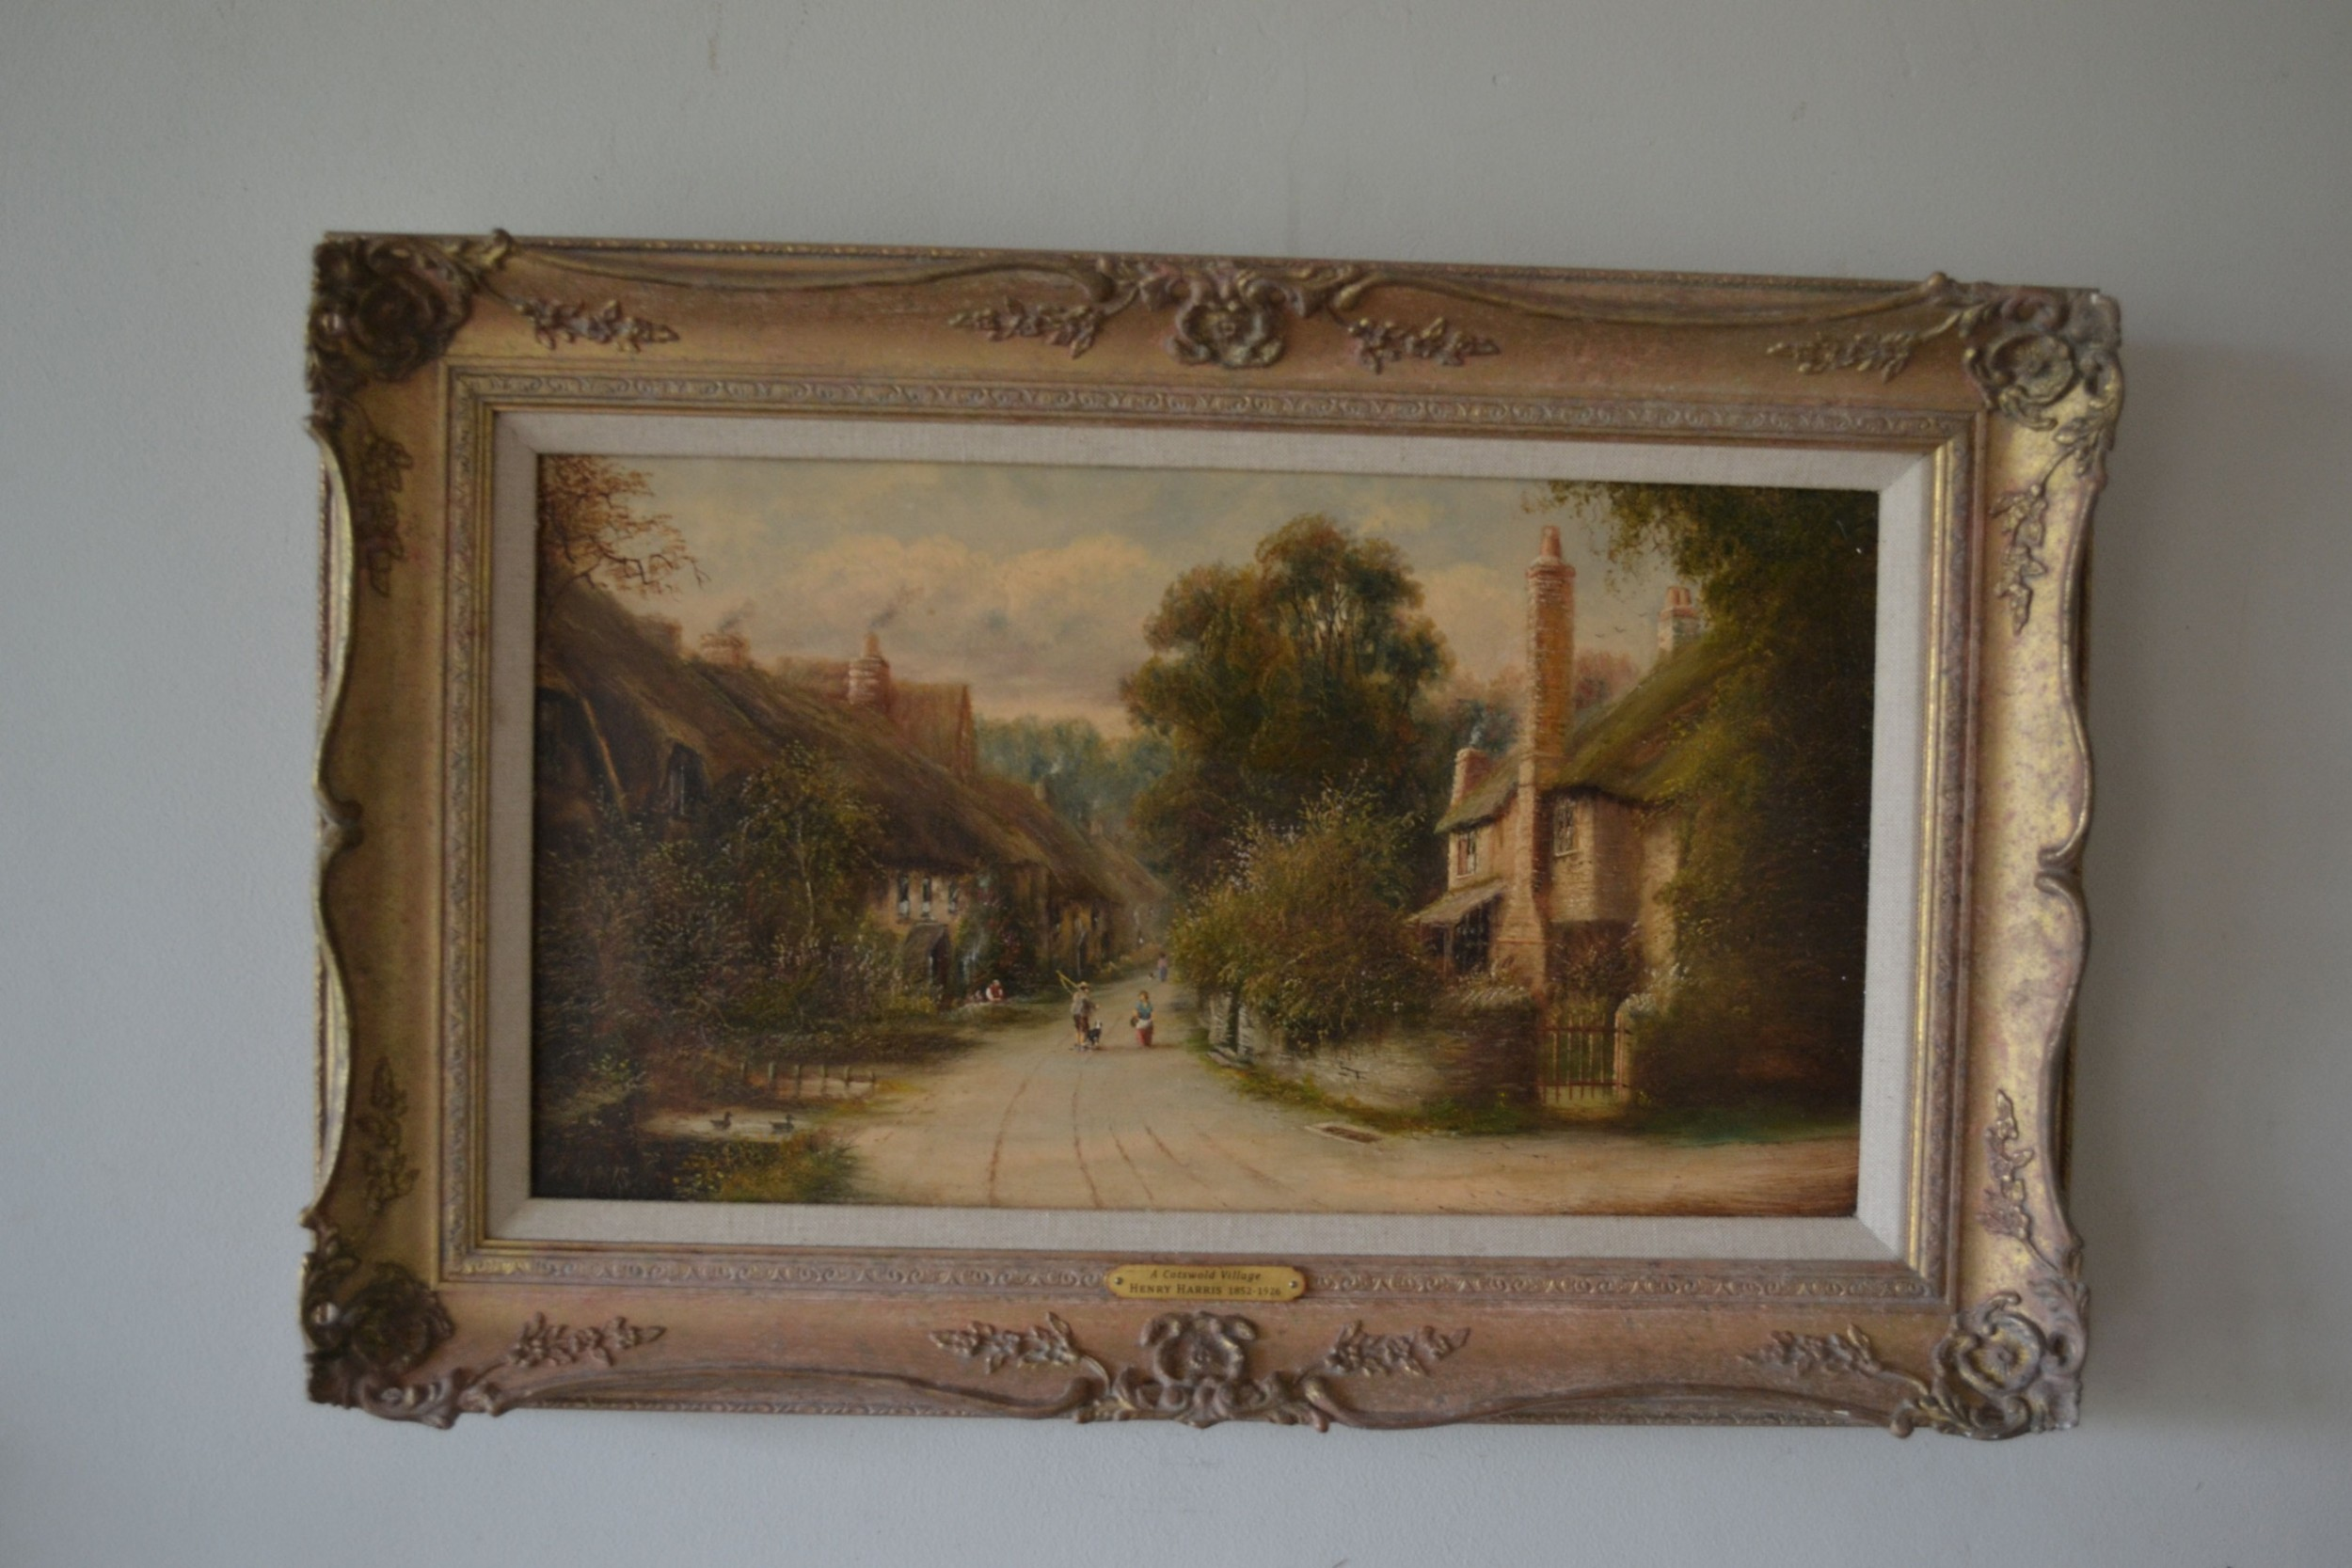 cotswold village c1900 oil on canvas english landscape henry clarence harris 18521926